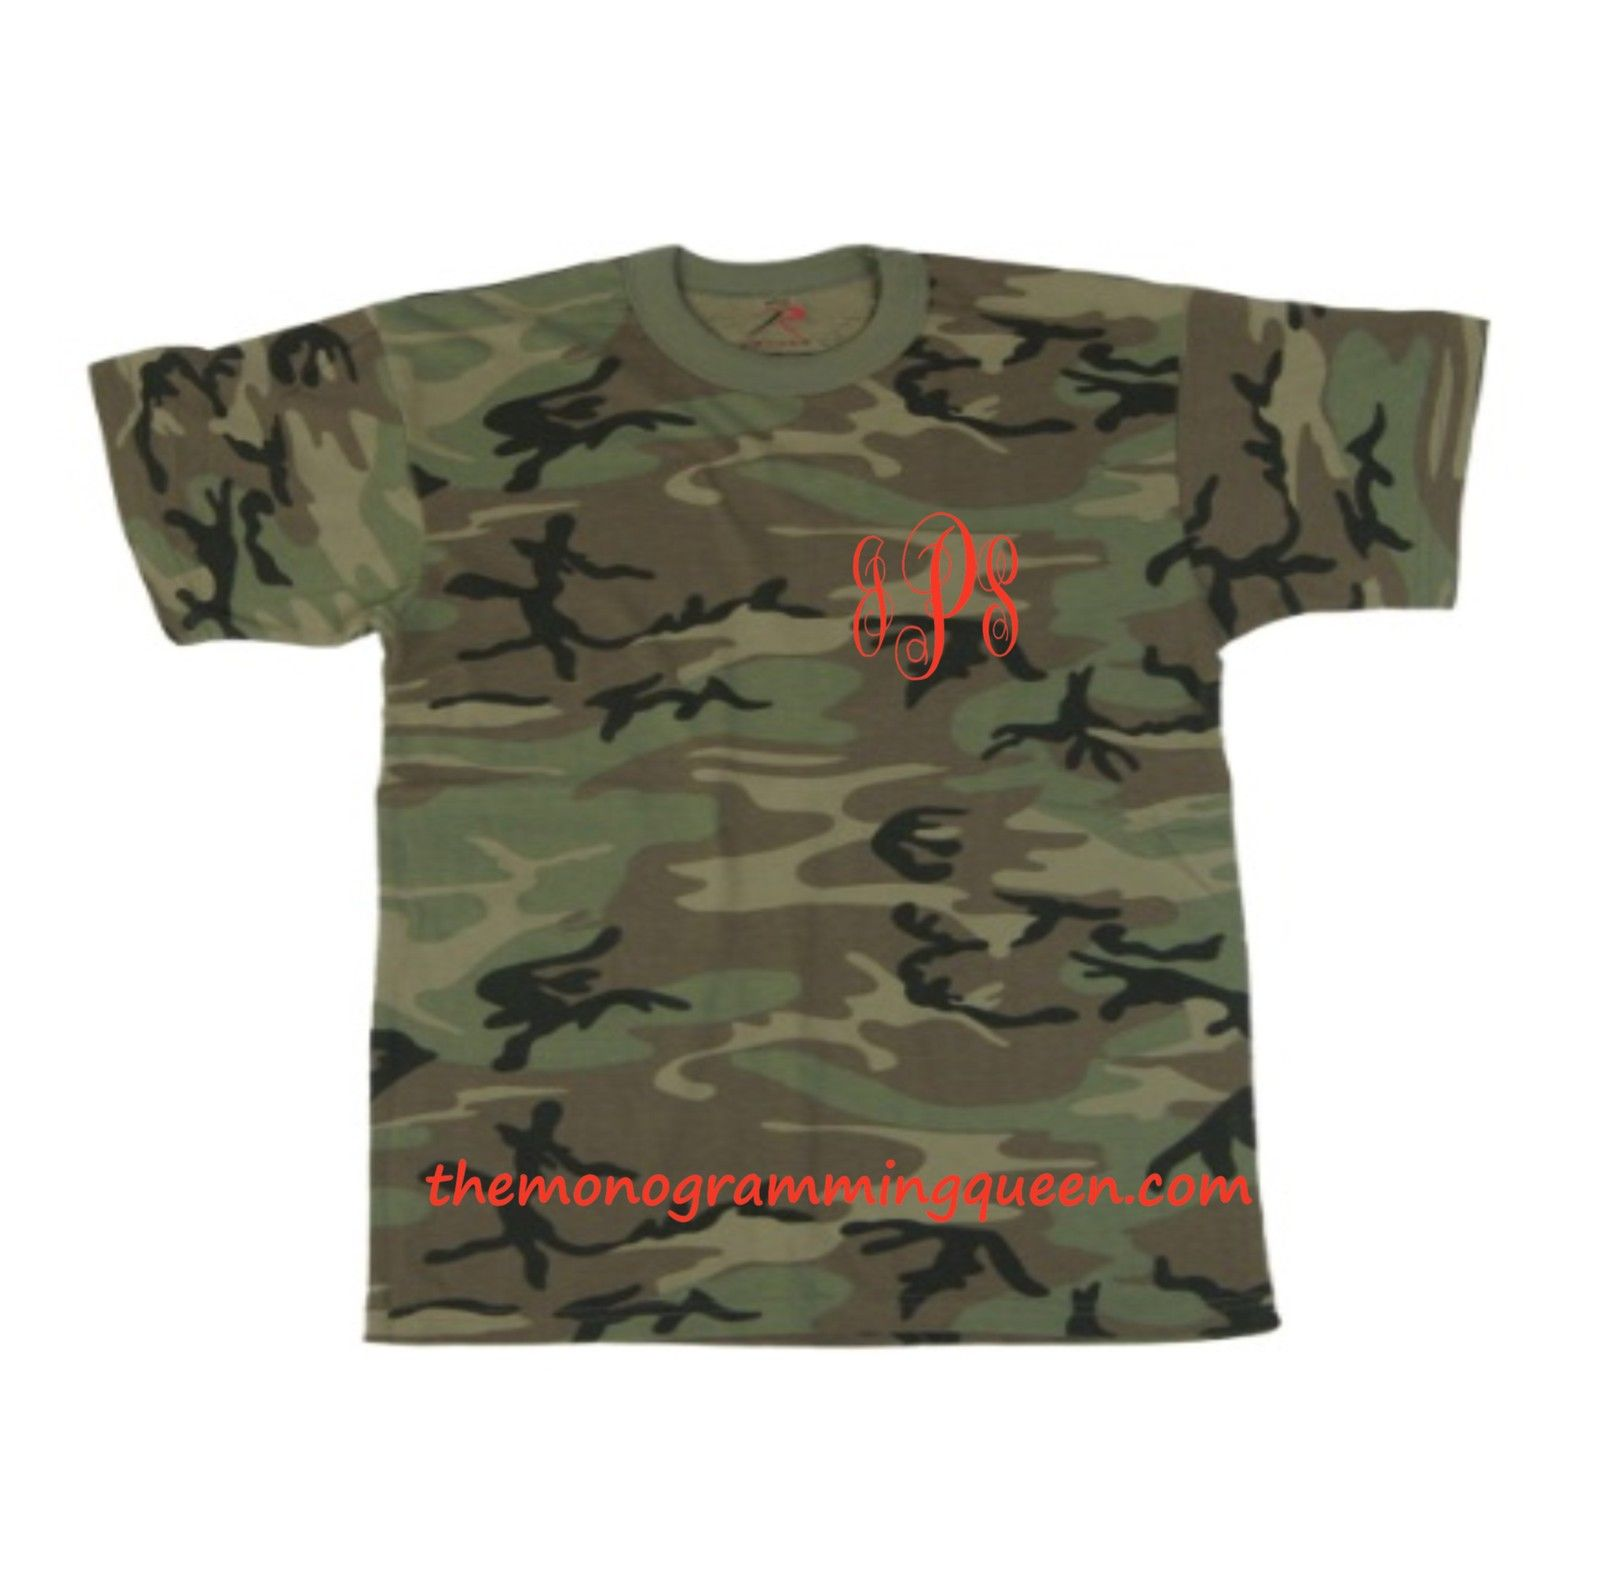 Monogram Camo Tee short sleeve